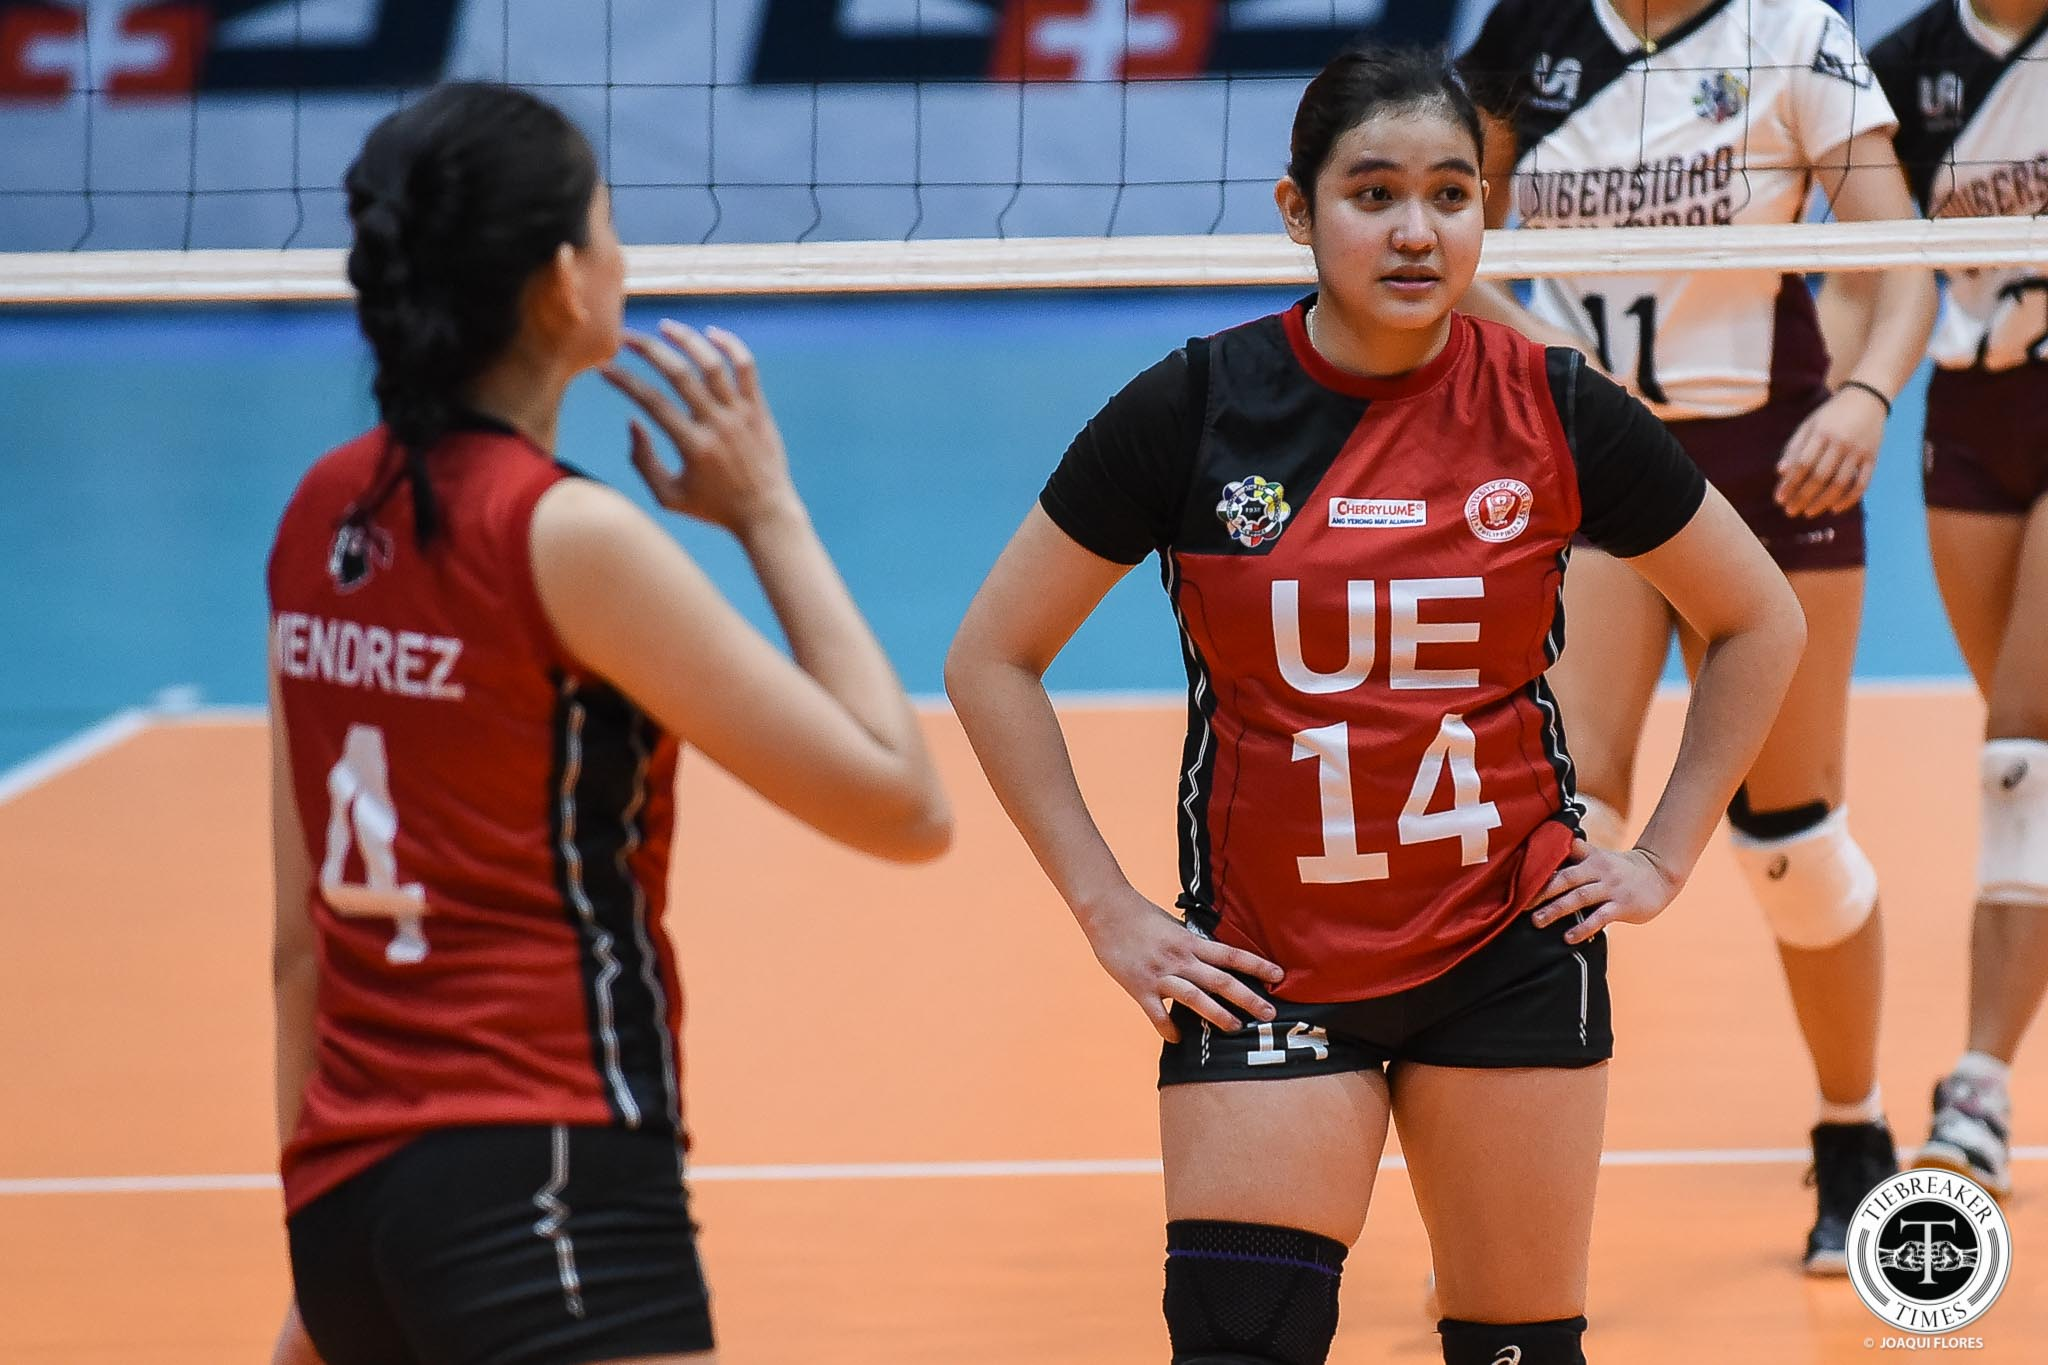 Tiebreaker Times Best Setter frontrunner Lai Bendong credits Arado, Abil for solid season News UAAP UE Volleyball  UE Women's Volleyball UAAP Season 81 Women's Volleyball UAAP Season 81 Lai Bendong